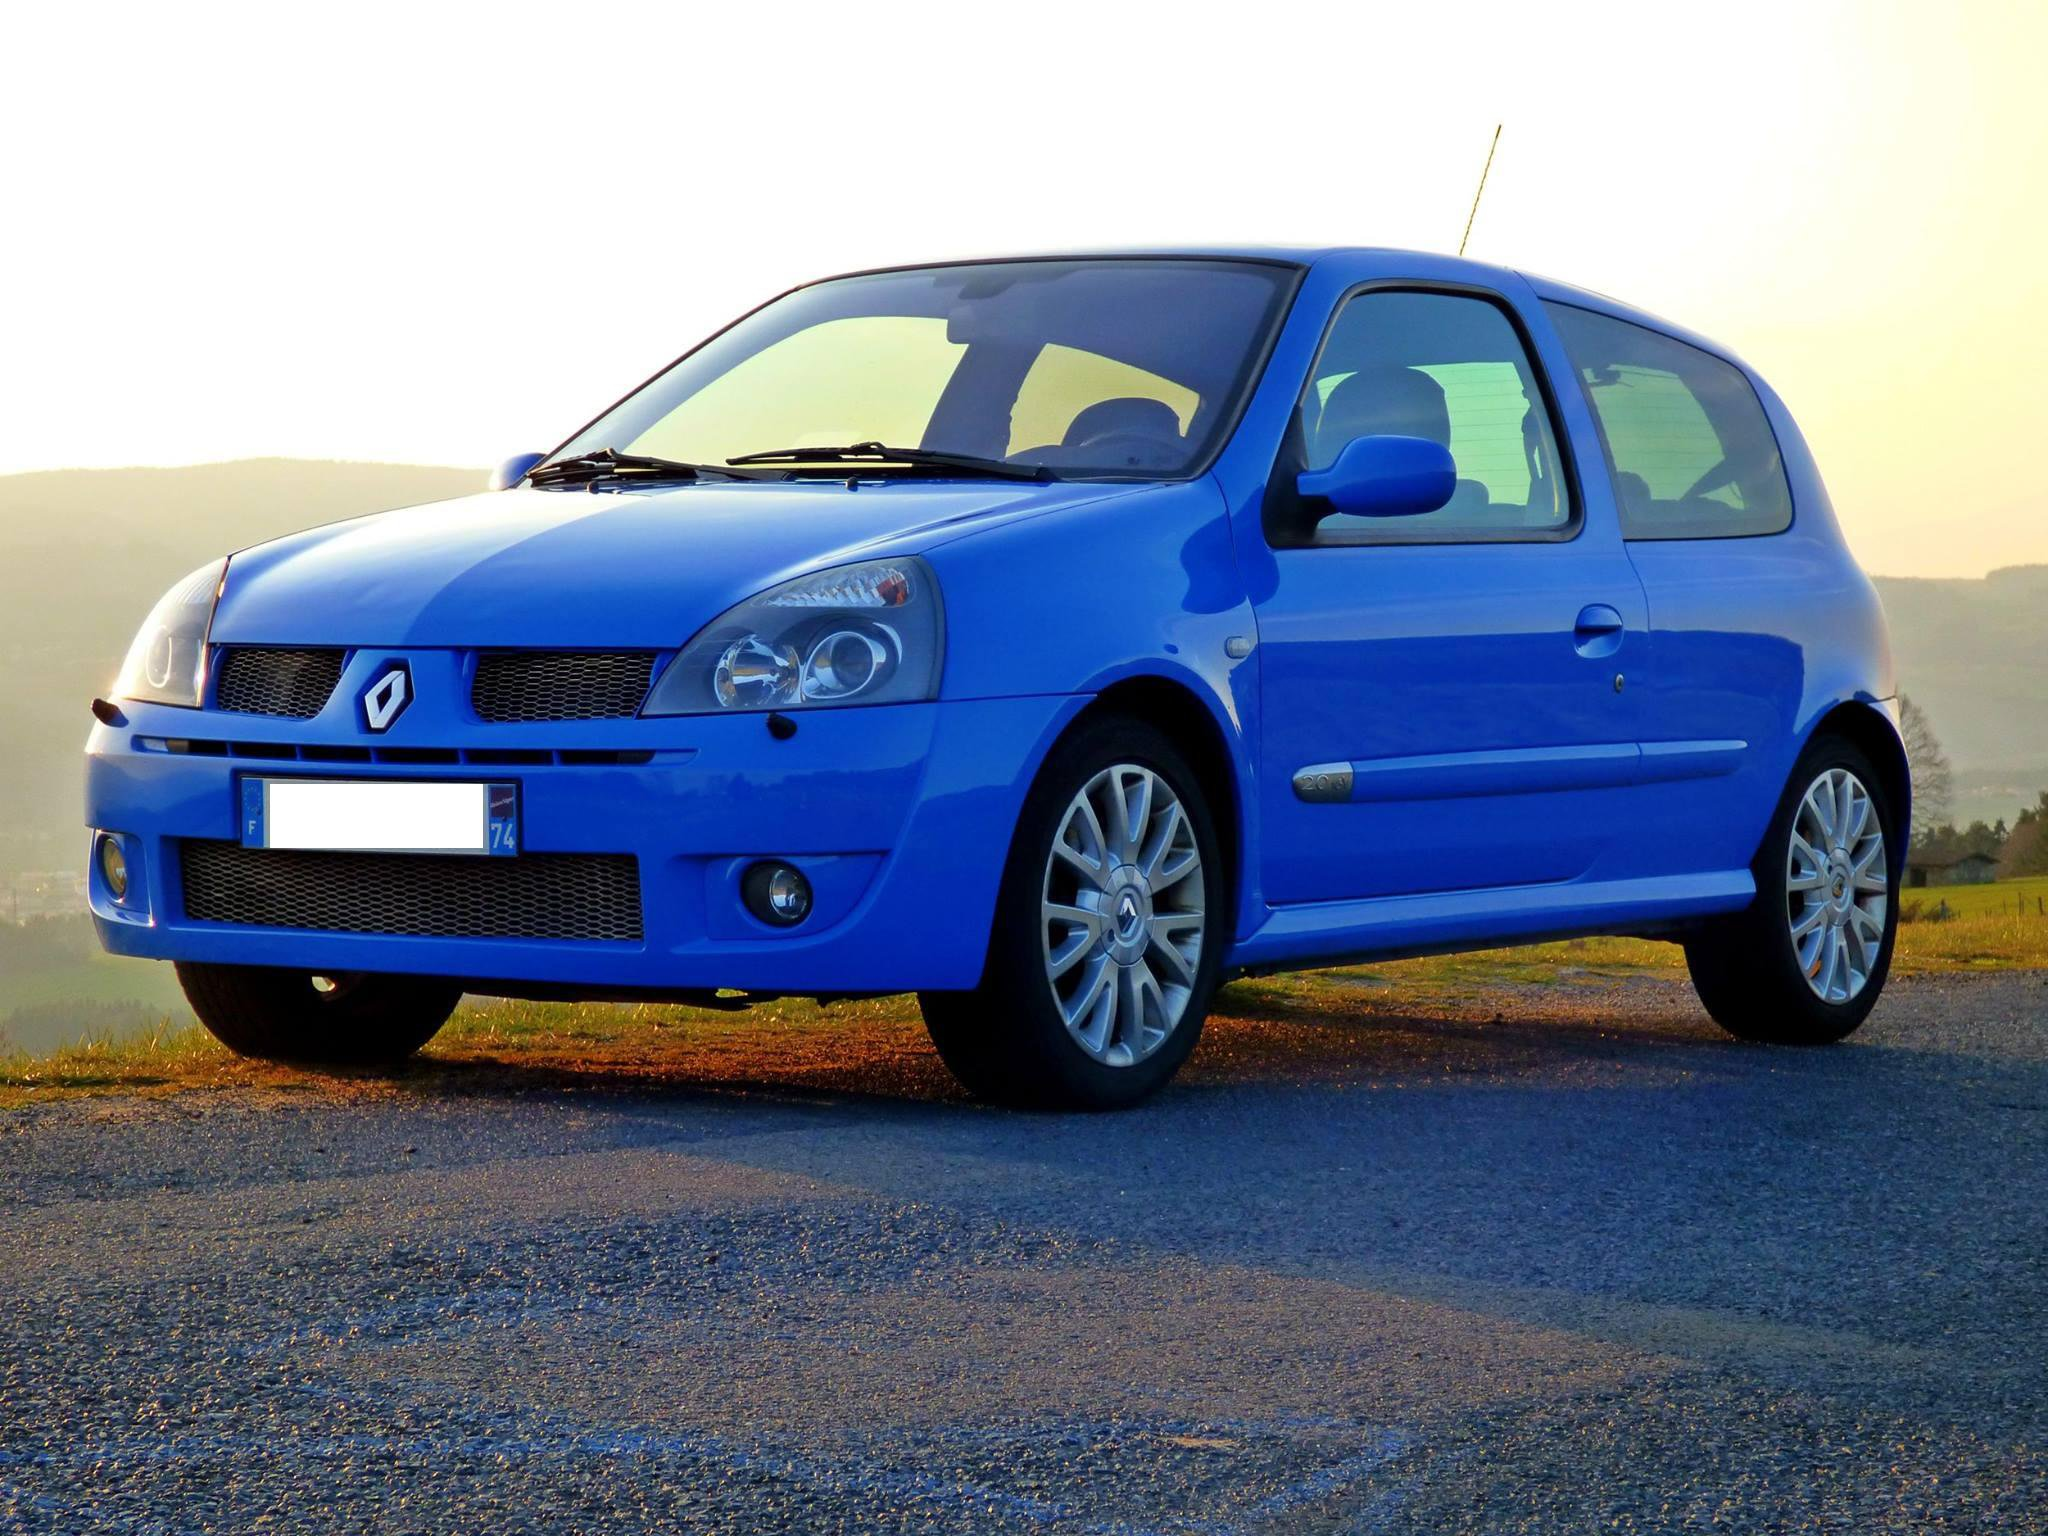 clio 2 rs phase 3 bleu dynamo f1 team clio clio rs renault forum marques. Black Bedroom Furniture Sets. Home Design Ideas